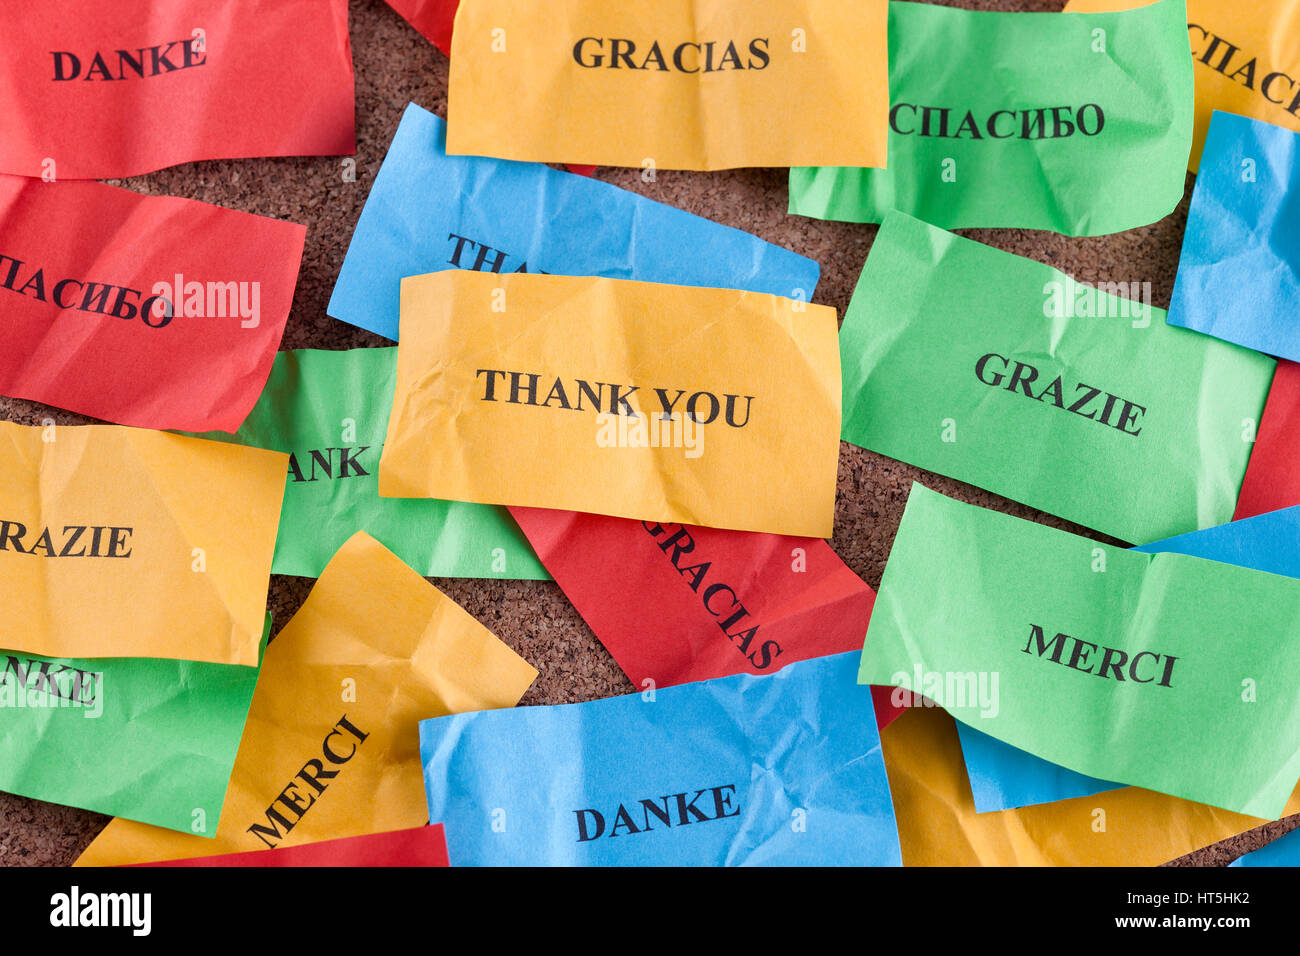 Thank you in many languages on colorful pieces of paper. - Stock Image